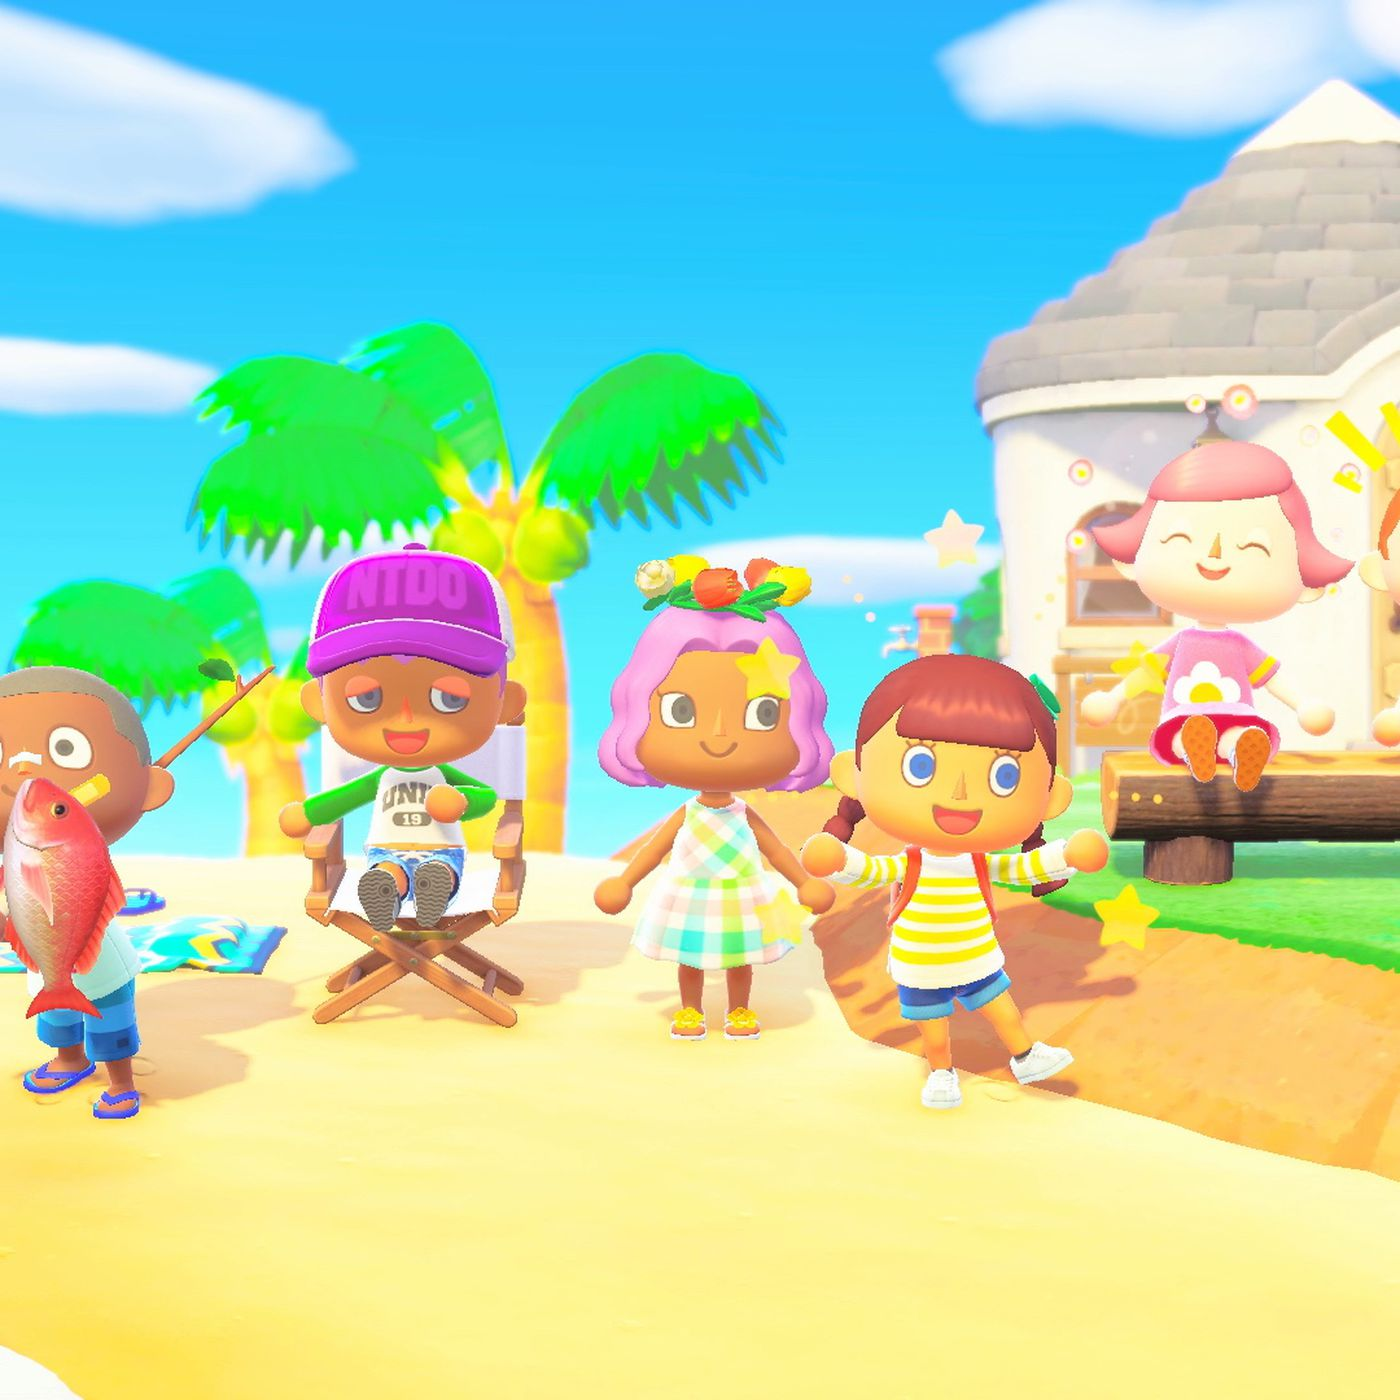 The Terror Of Sharing An Animal Crossing Village Polygon